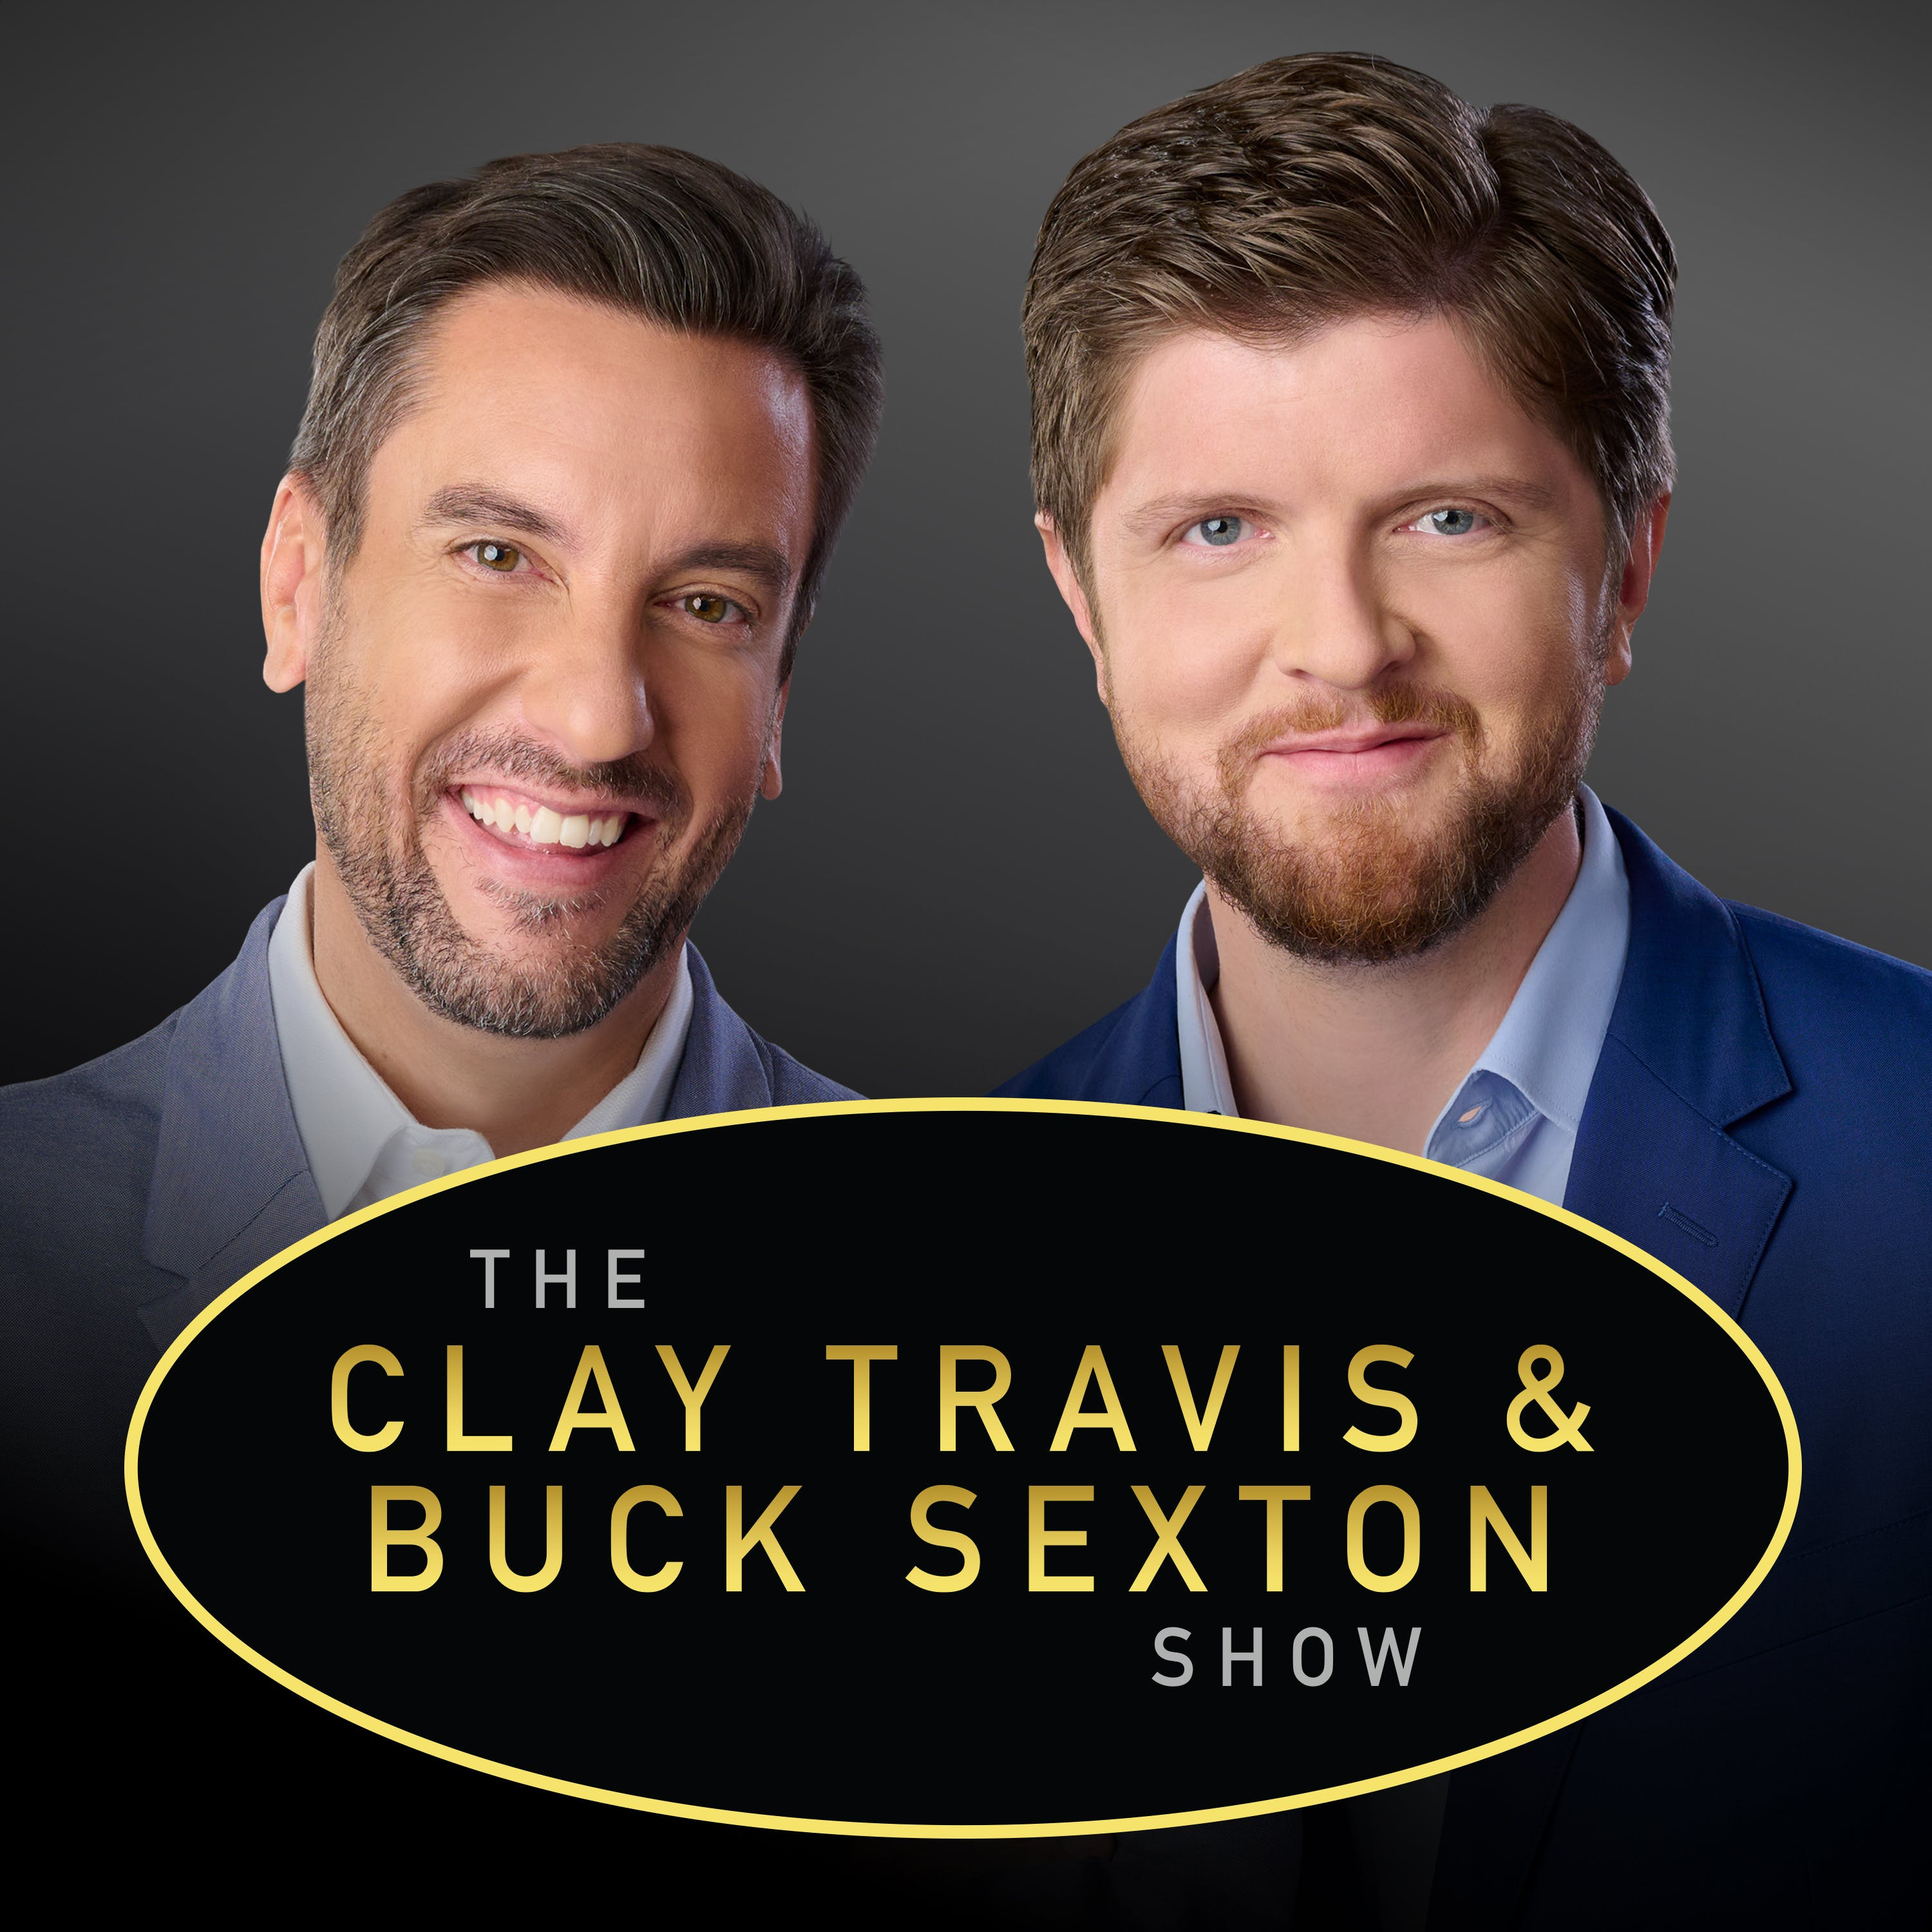 Clay Travis and Buck Sexton Show H1 - Sep 20 2021